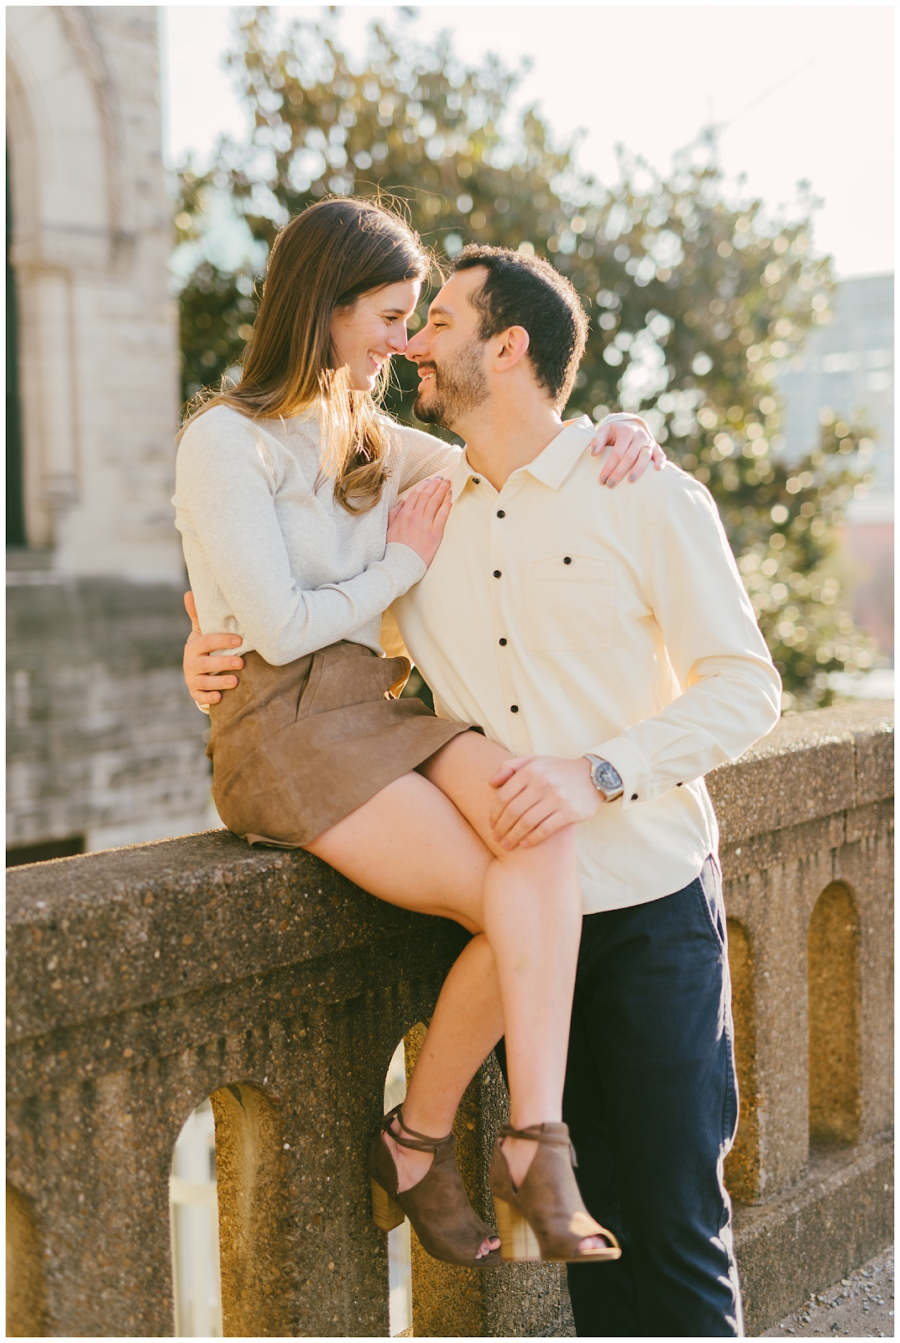 The Best Nashville Engagement Session Locations from Kéra Photography featured on Nashville Bride Guide